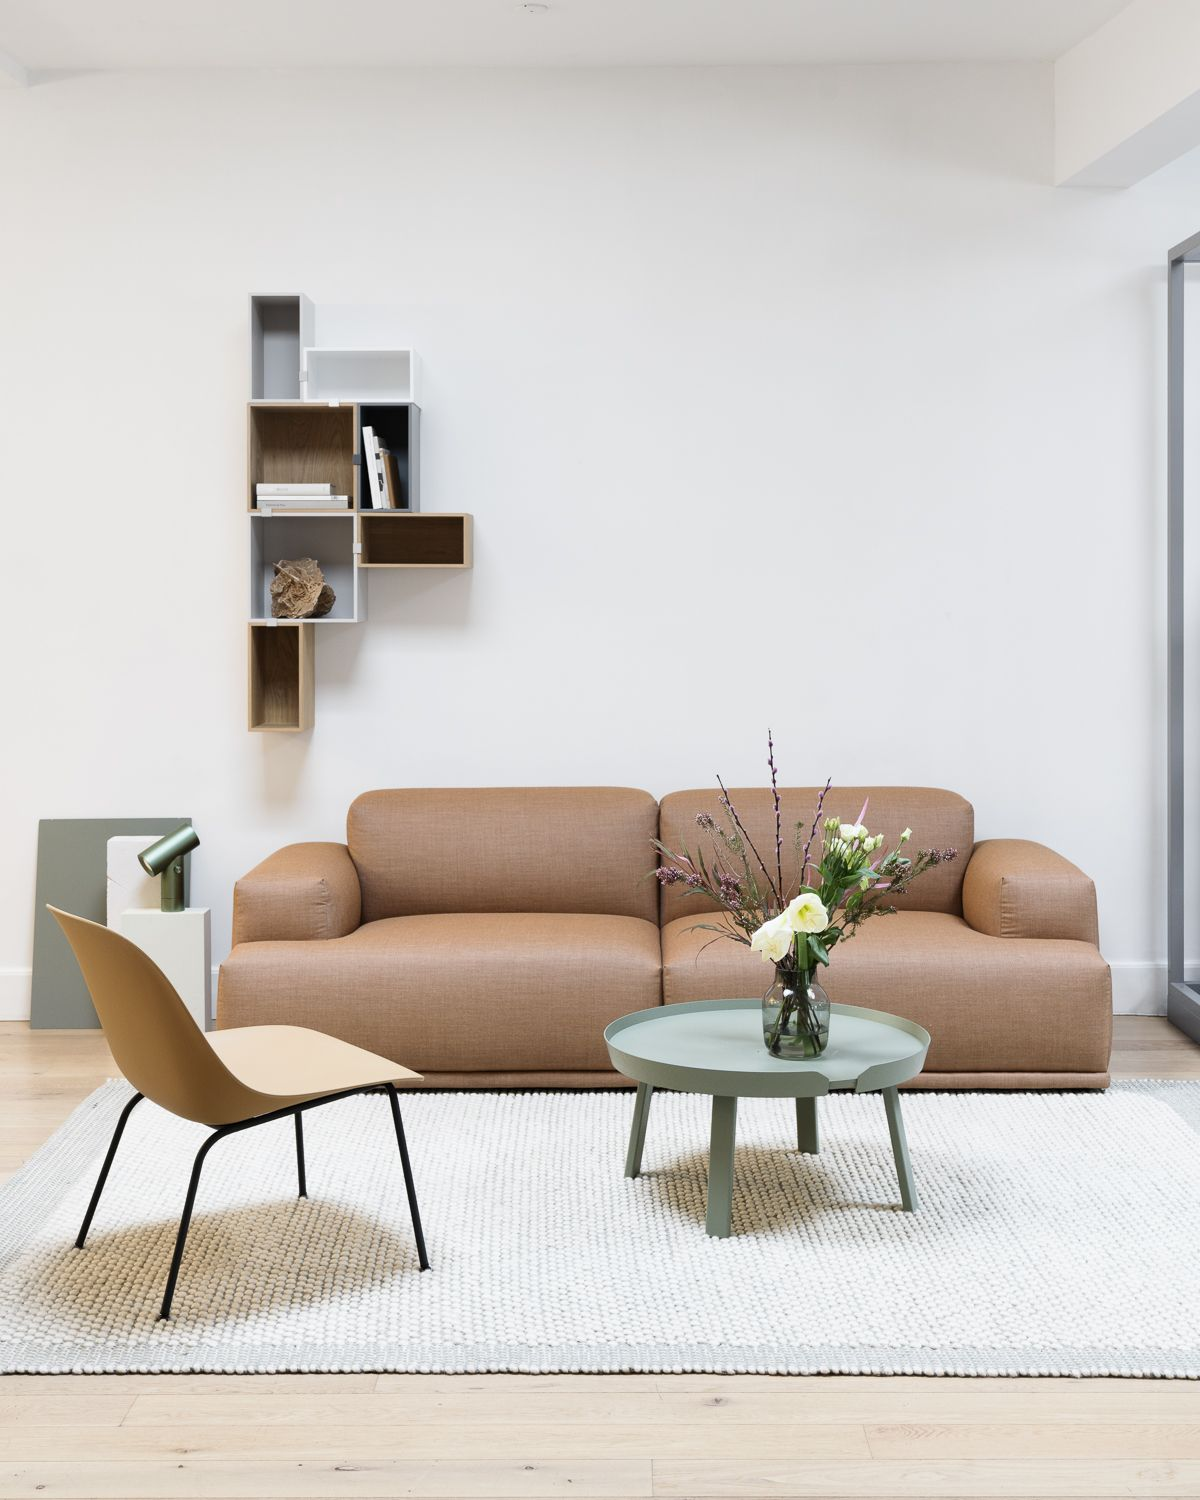 Scandinavian Modular Sofa Inspiration From Muuto With 11 Possible Modules The Connect Modular Modular Sofa Design Living Room Inspiration Modern Sofa Designs